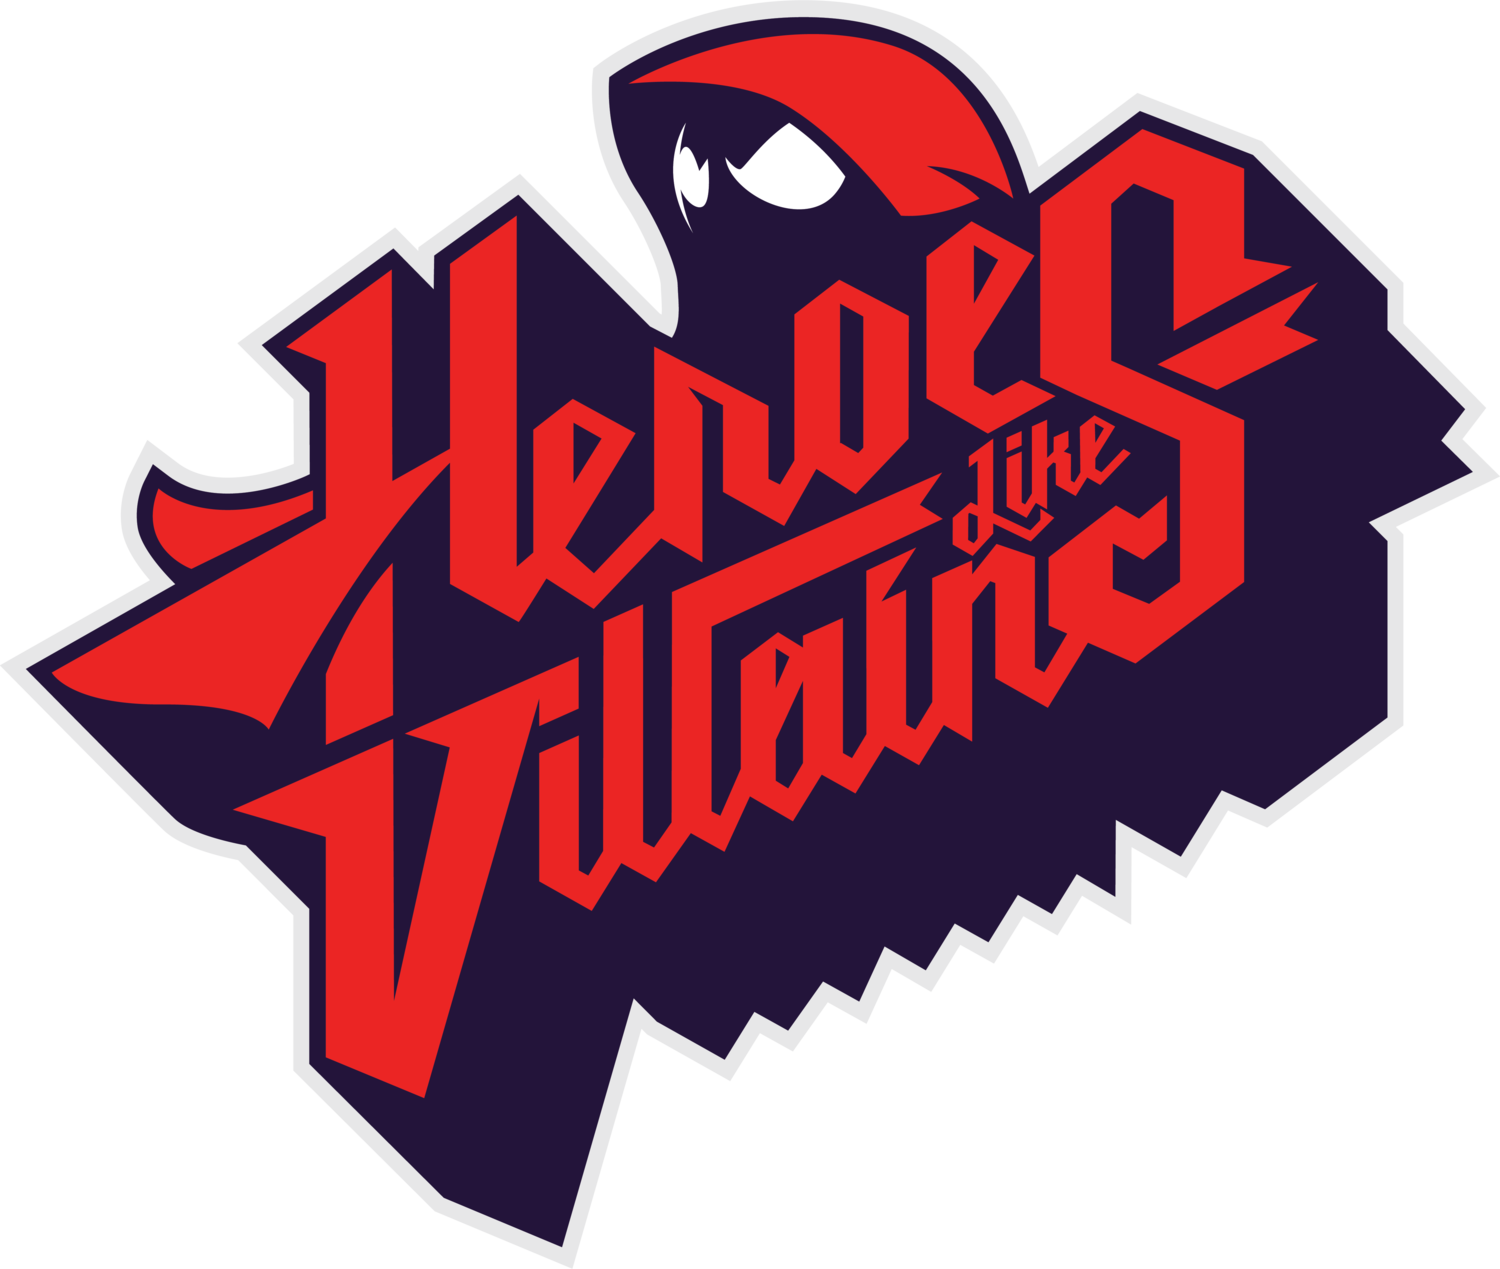 Heroes Like Villains